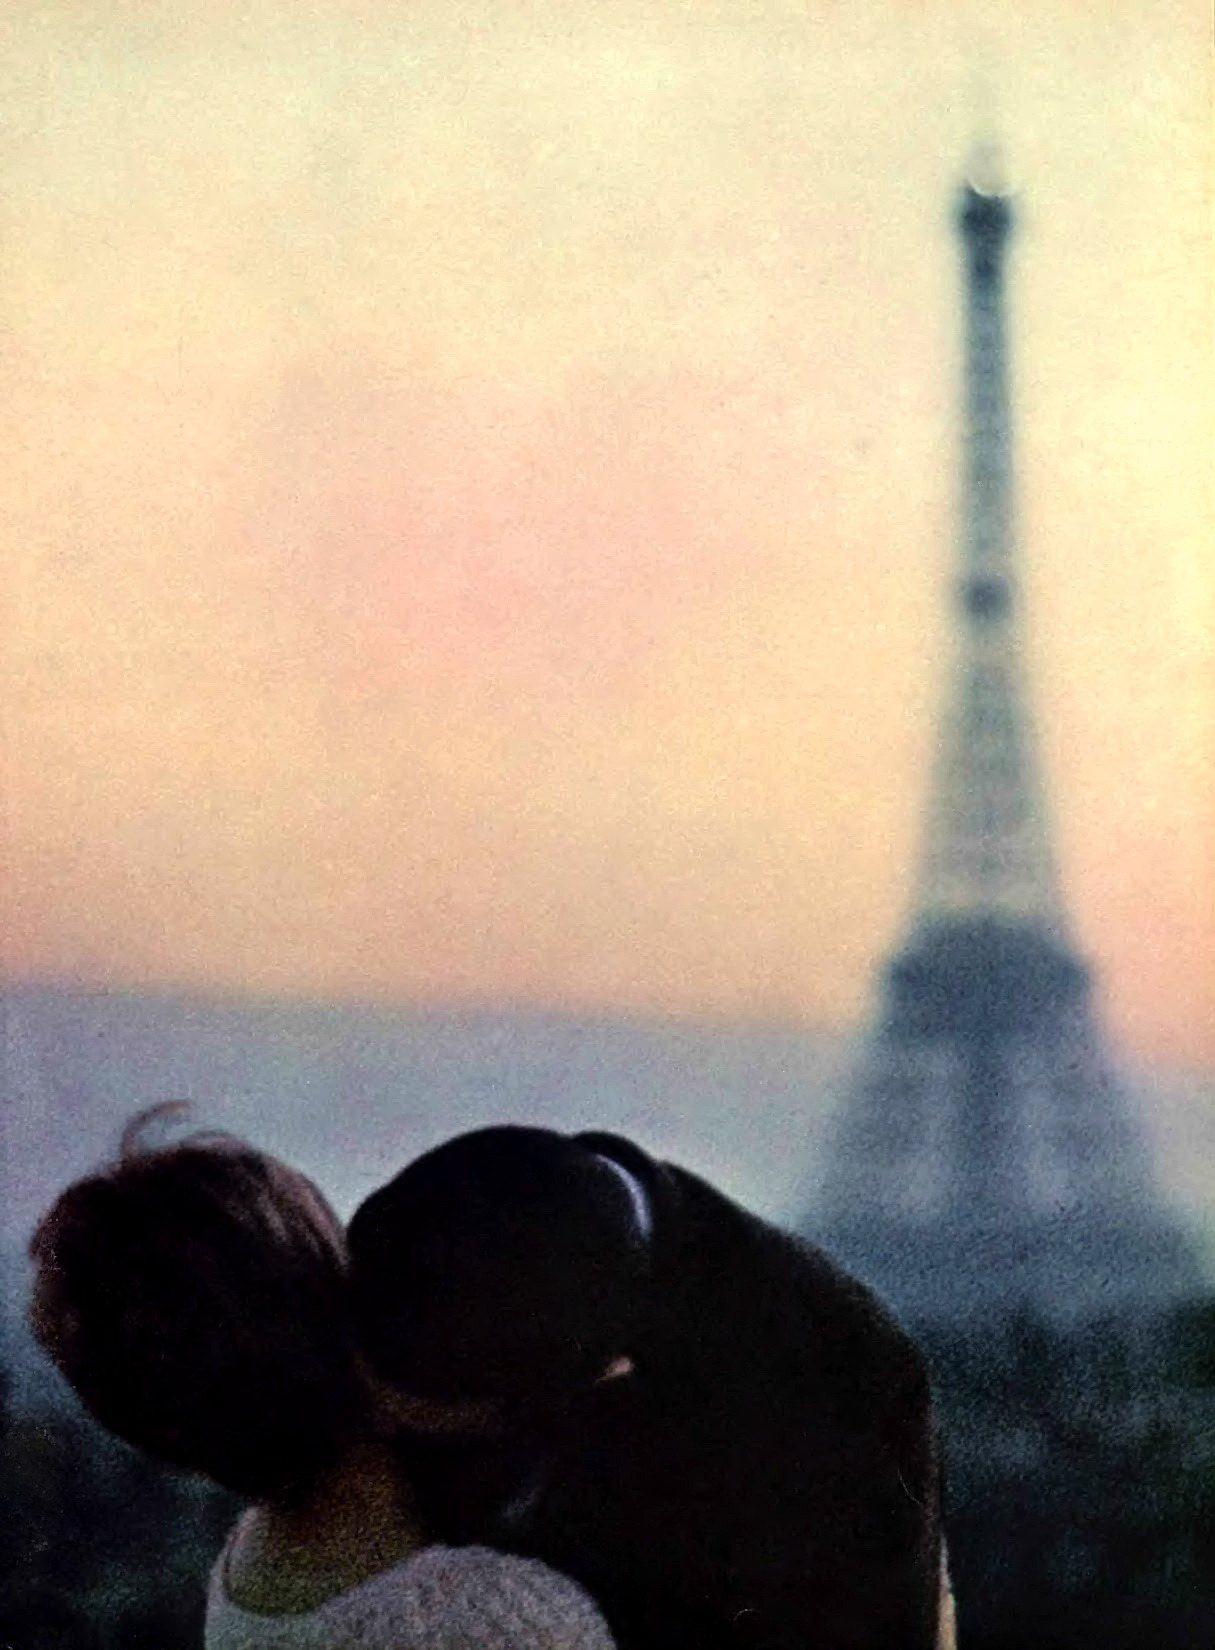 Paris in the sixties.